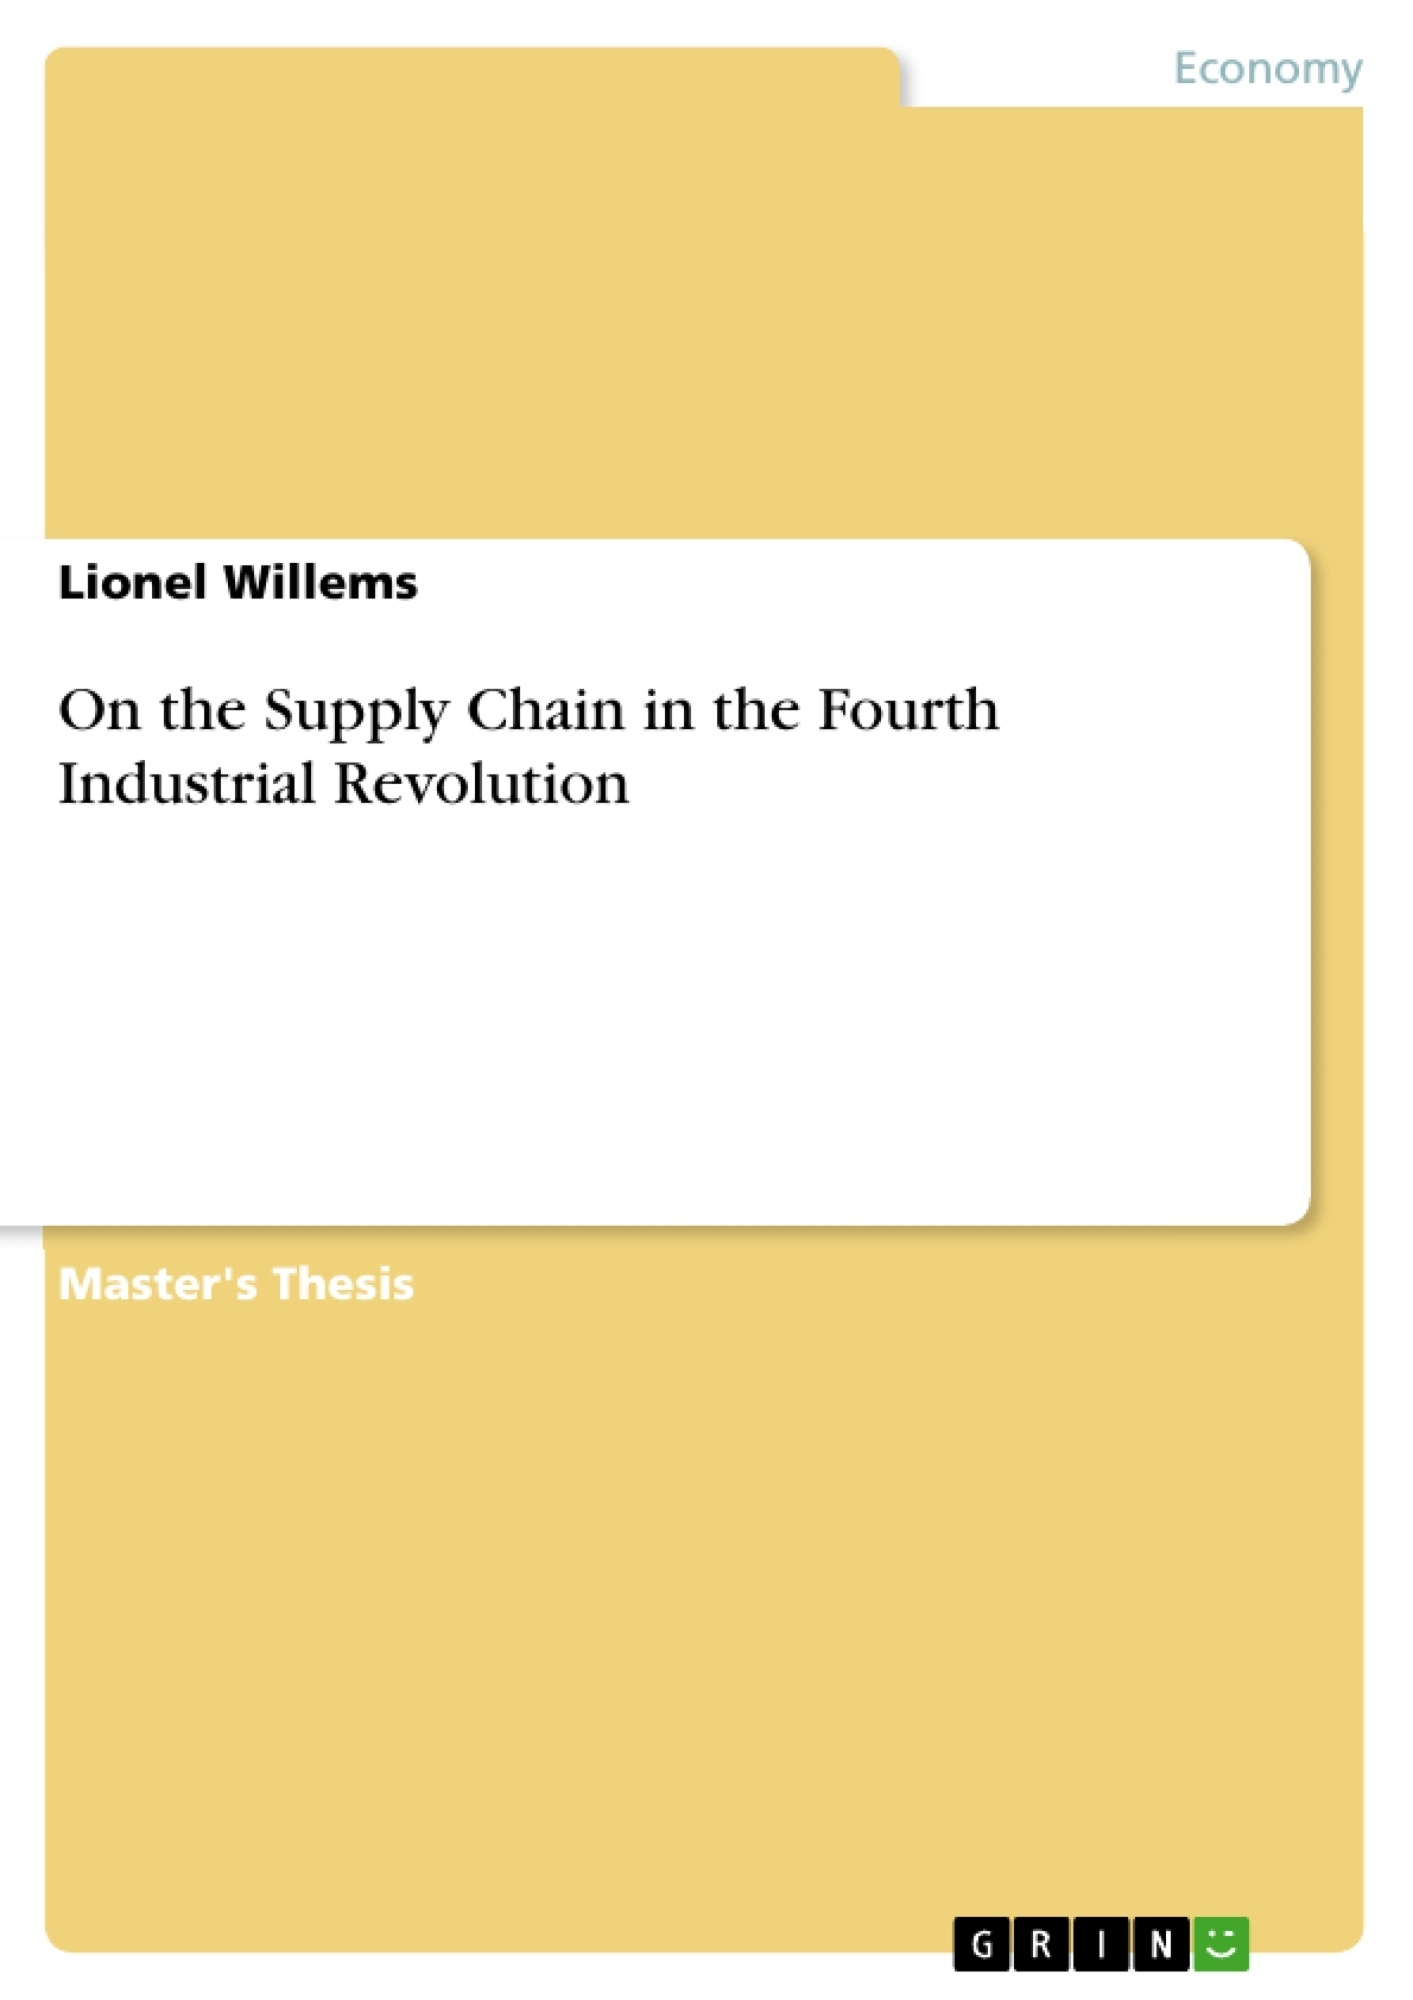 Title: On the Supply Chain in the Fourth Industrial Revolution